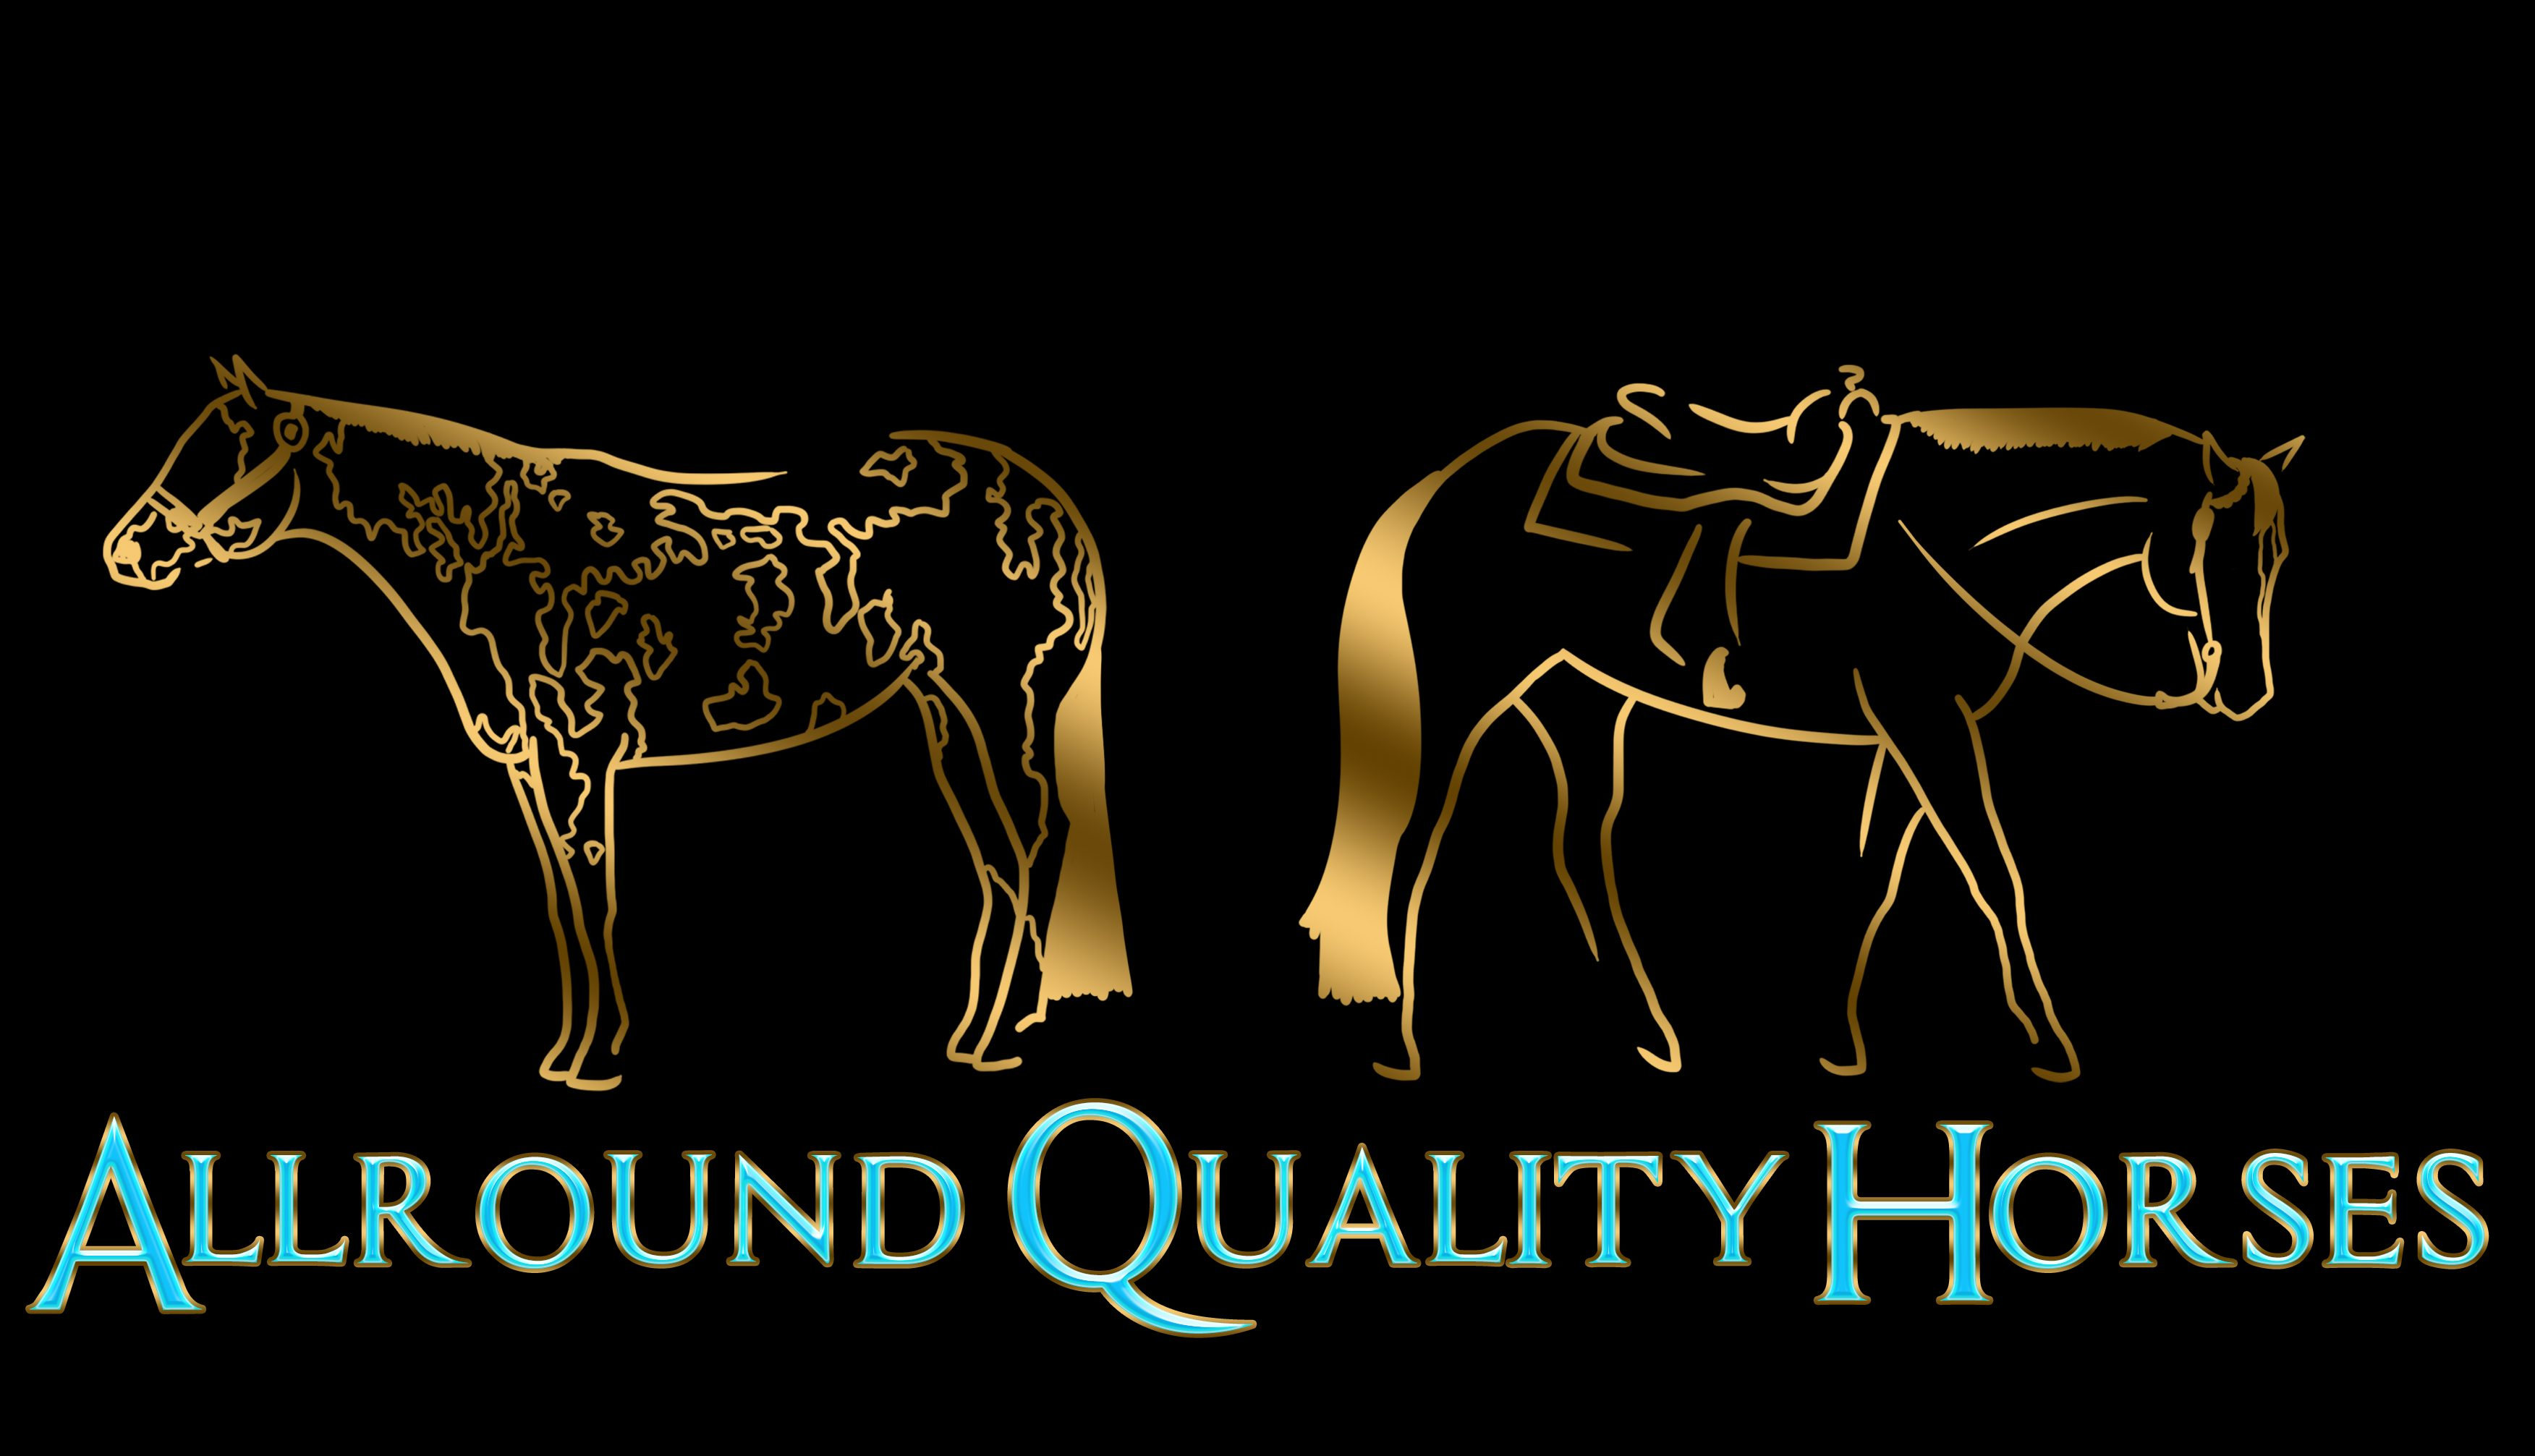 Allround Quality Horses